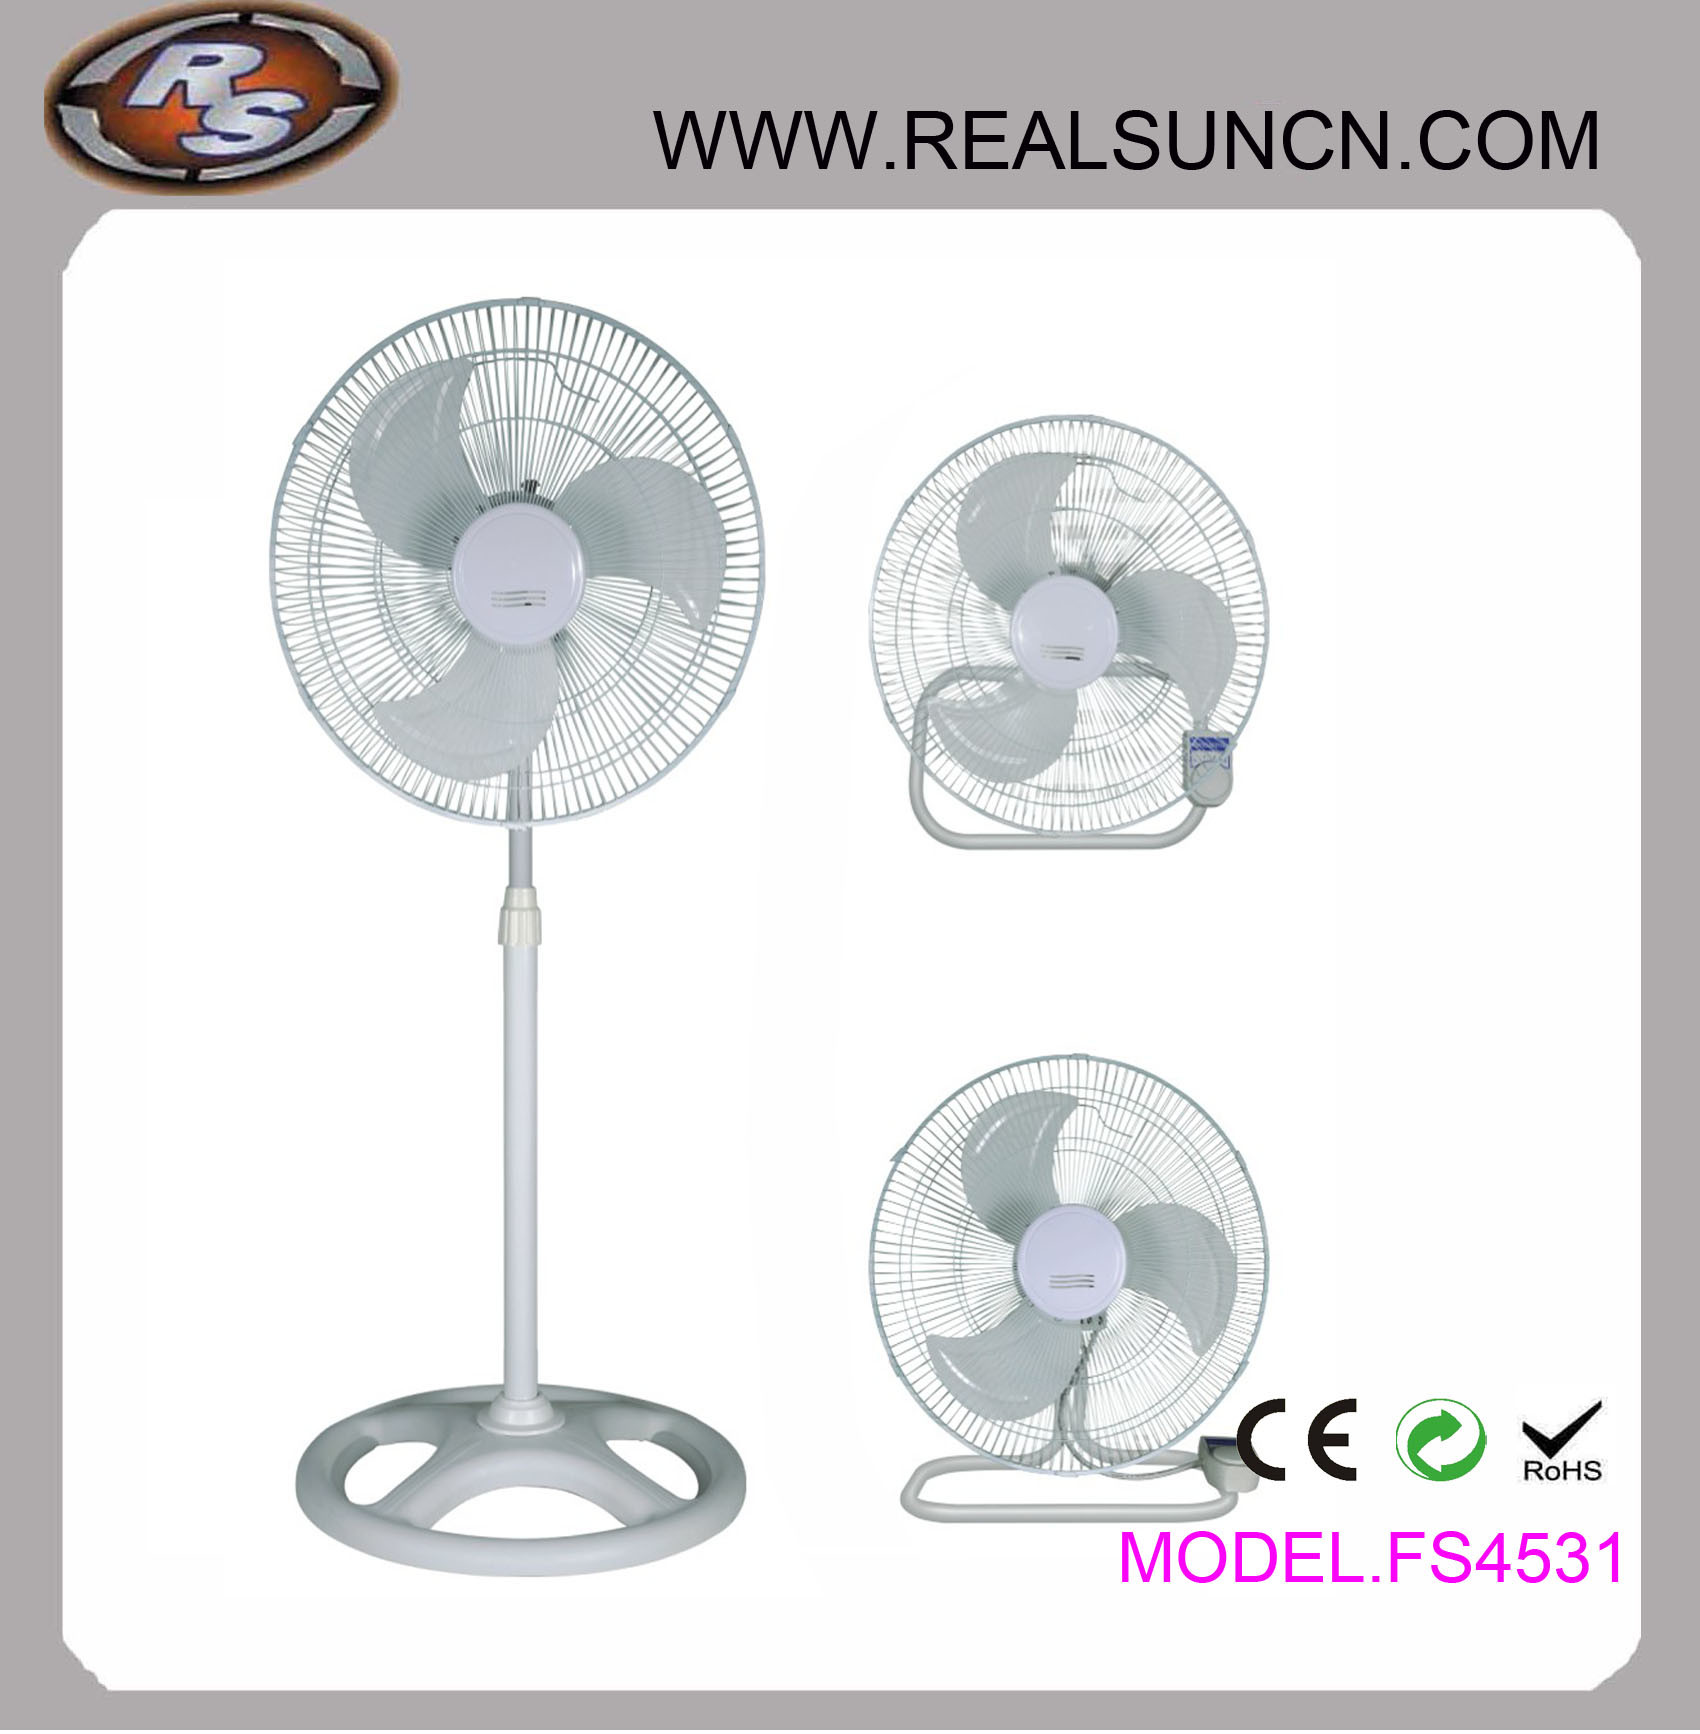 18inch Industrial 3 in 1 Fan-Stand Table Fan, Wall Fan 3 in 1-Competitive Price